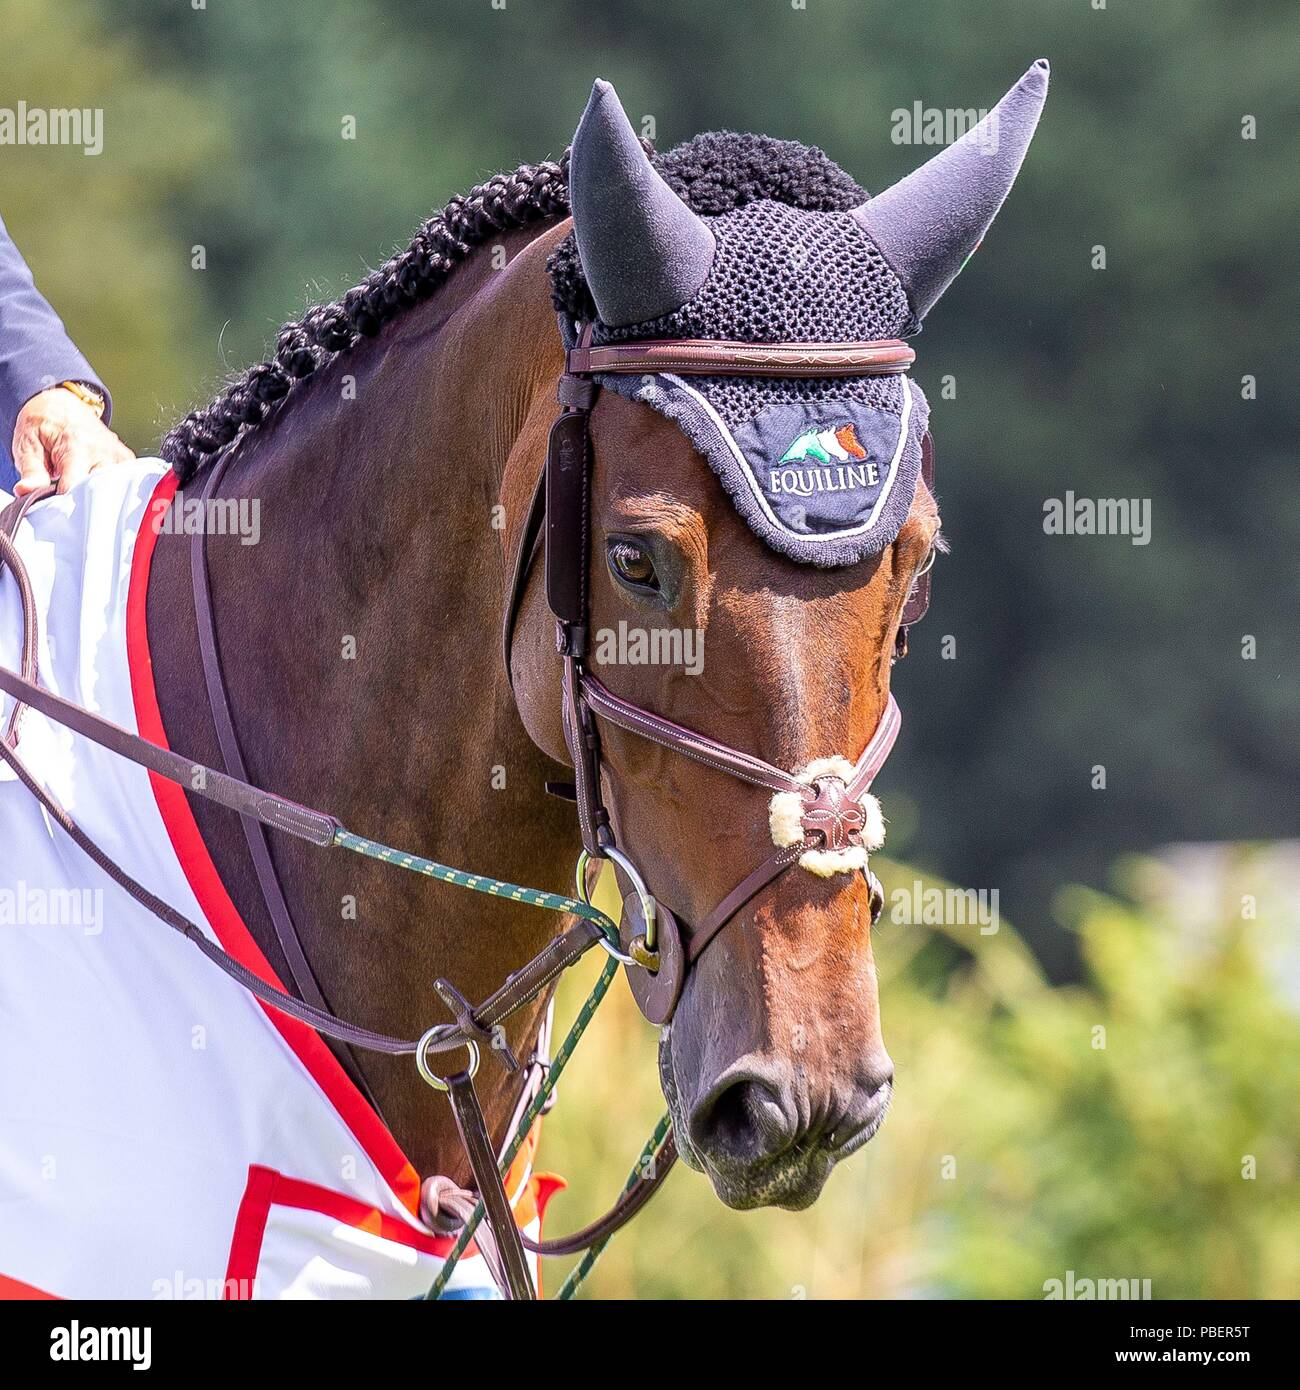 Sussex, UK. 28th July 2018. Winner. Laura Kraut riding Nouvelle. USA. The Bunn Lesiure Salver. Prizegiving. Showjumping. Longines FEI Jumping Nations Cup of Great Britain at the BHS Royal International Horse Show. All England Jumping Course. Hickstead. Great Britain. 28/07/2018. Credit: Sport In Pictures/Alamy Live News - Stock Image